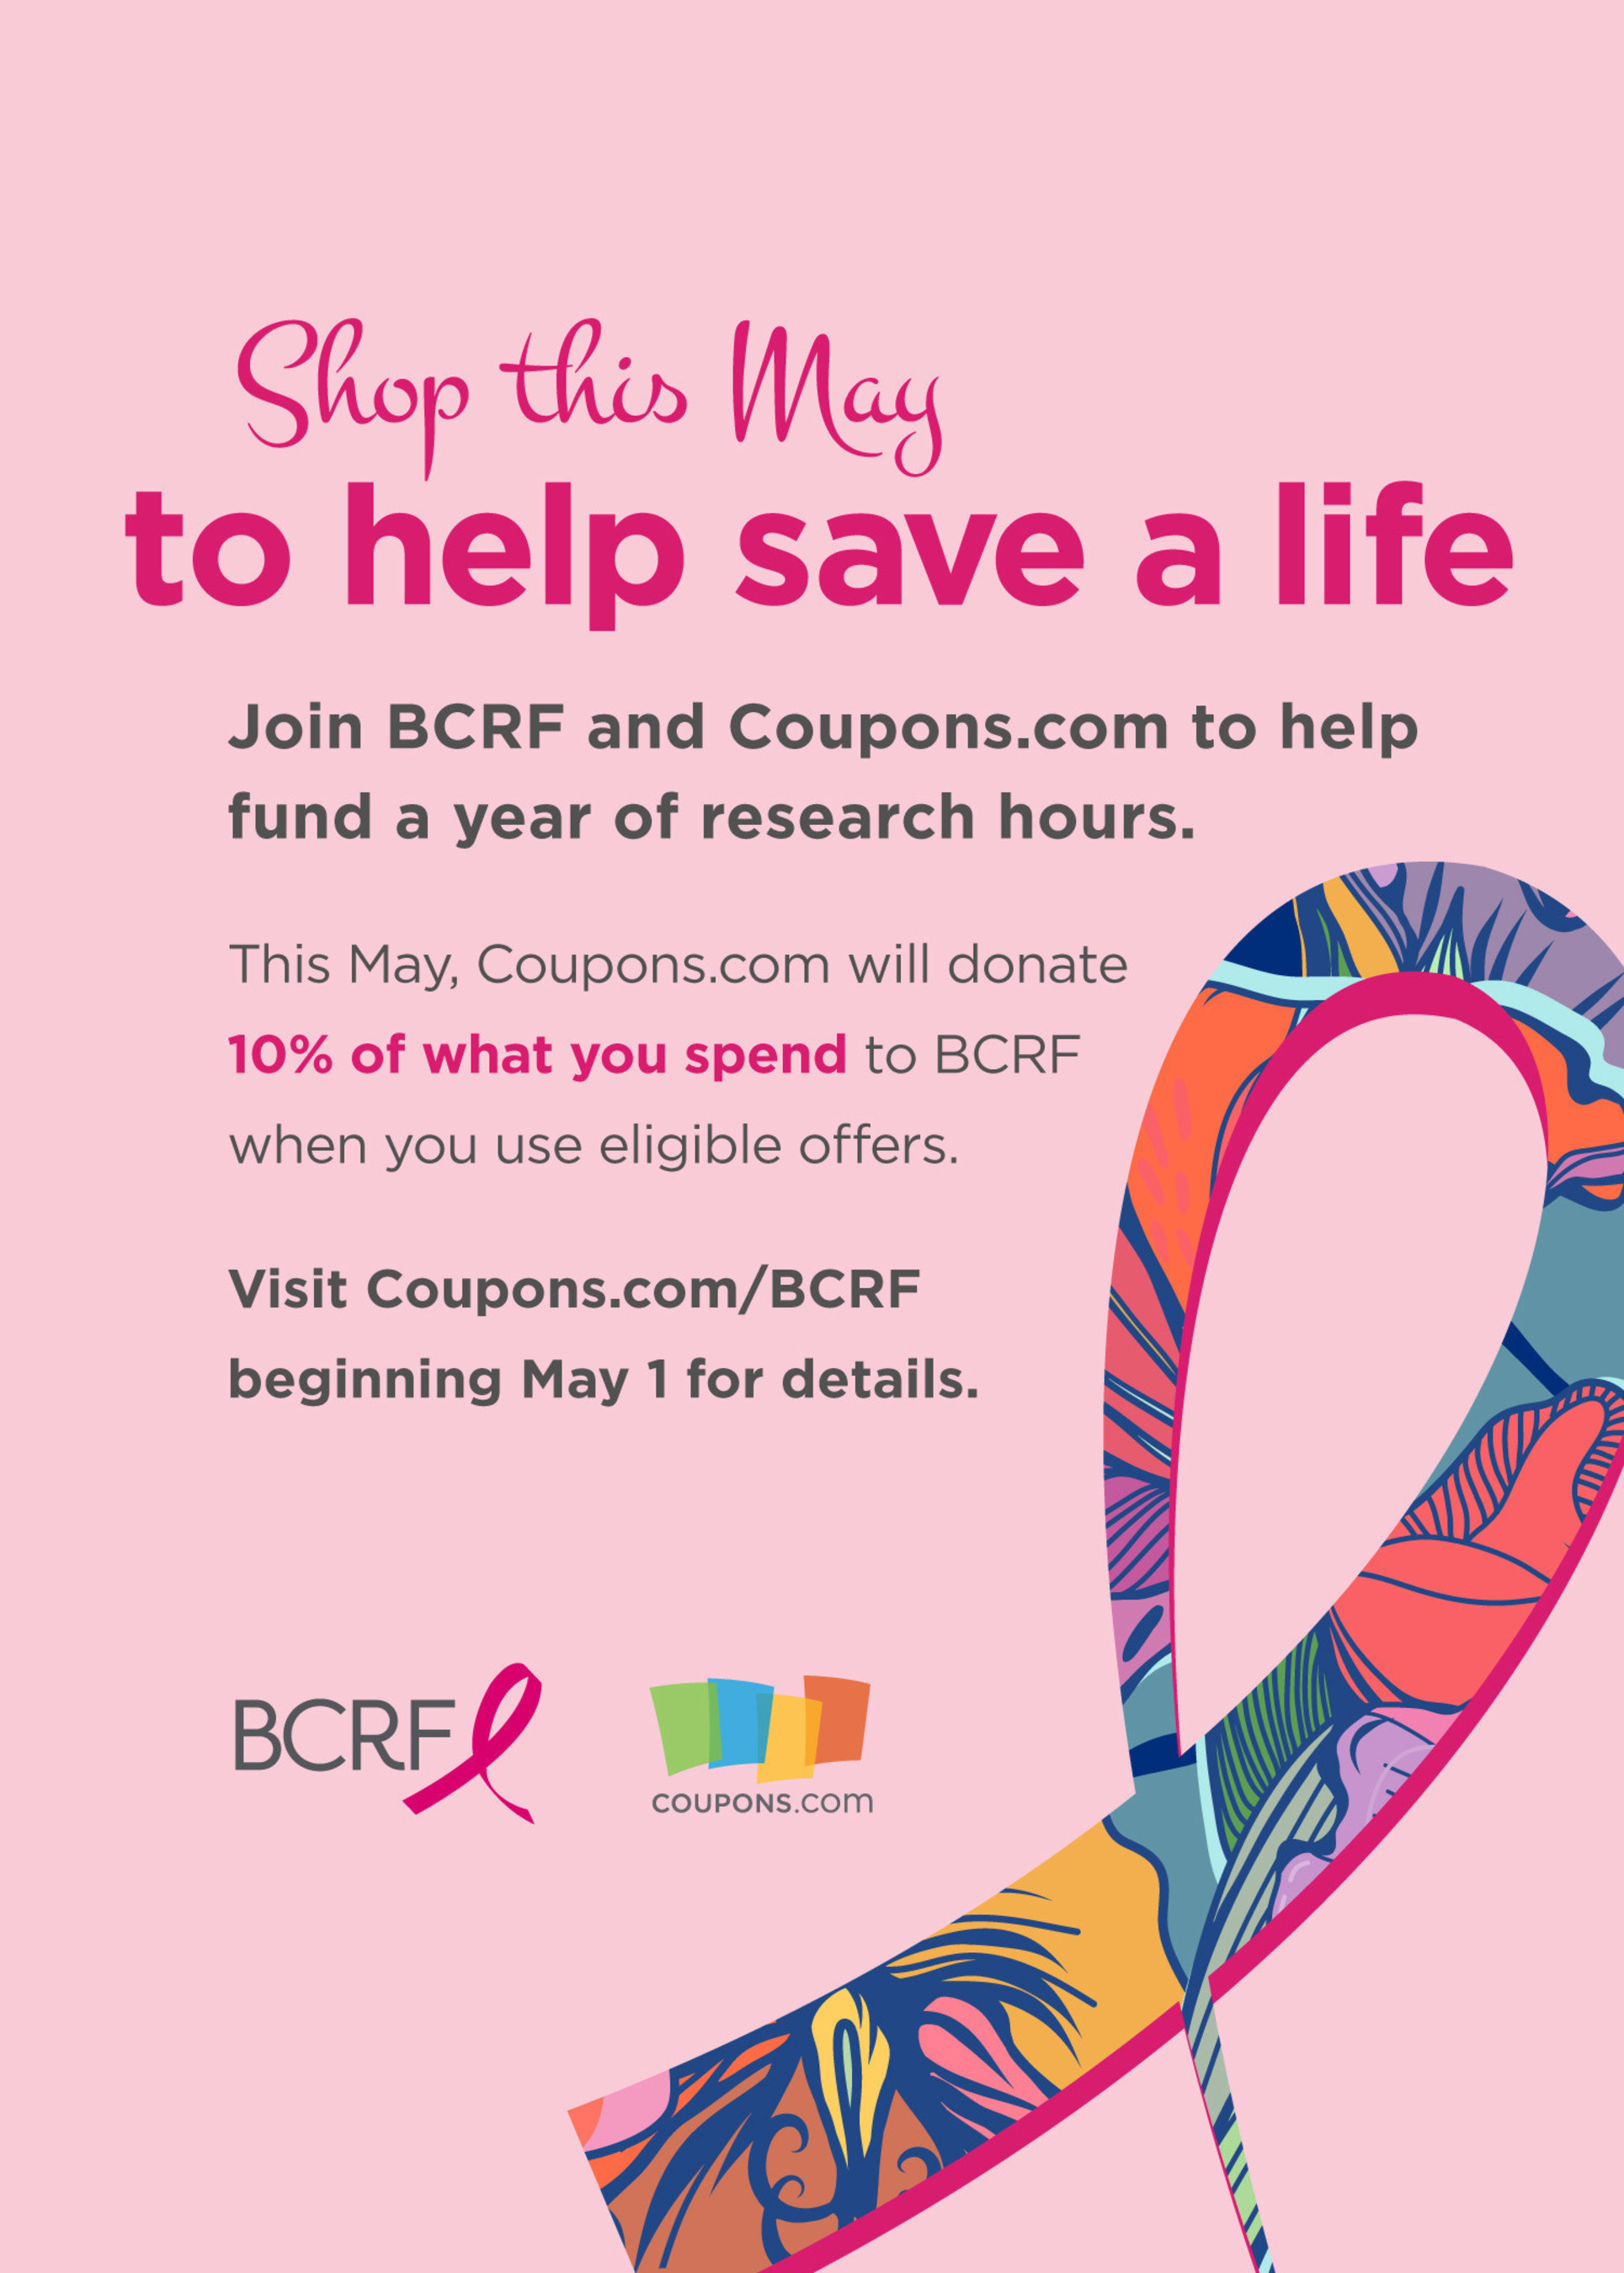 Coupons.com And The Breast Cancer Research Foundation Launch Partnership To Help Find A Cure